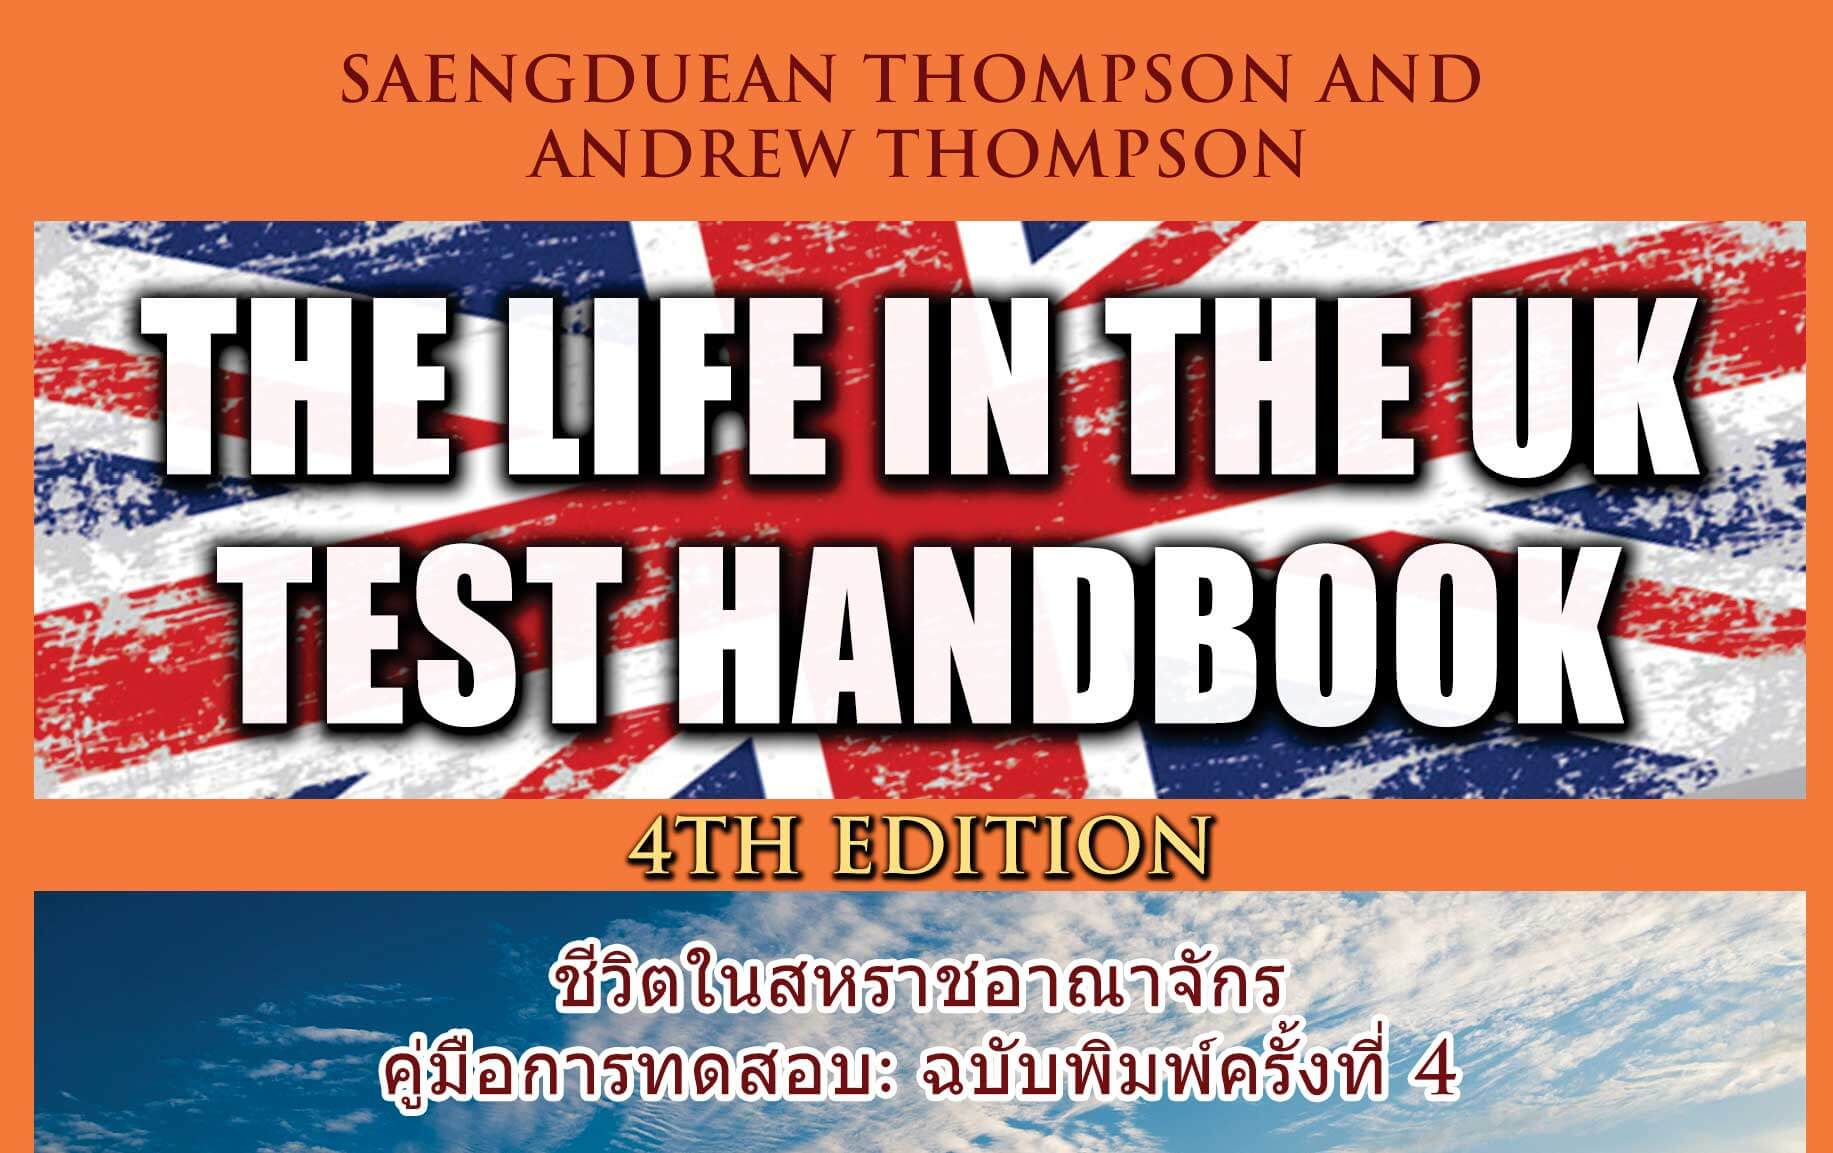 Thai handbook: 4th edition